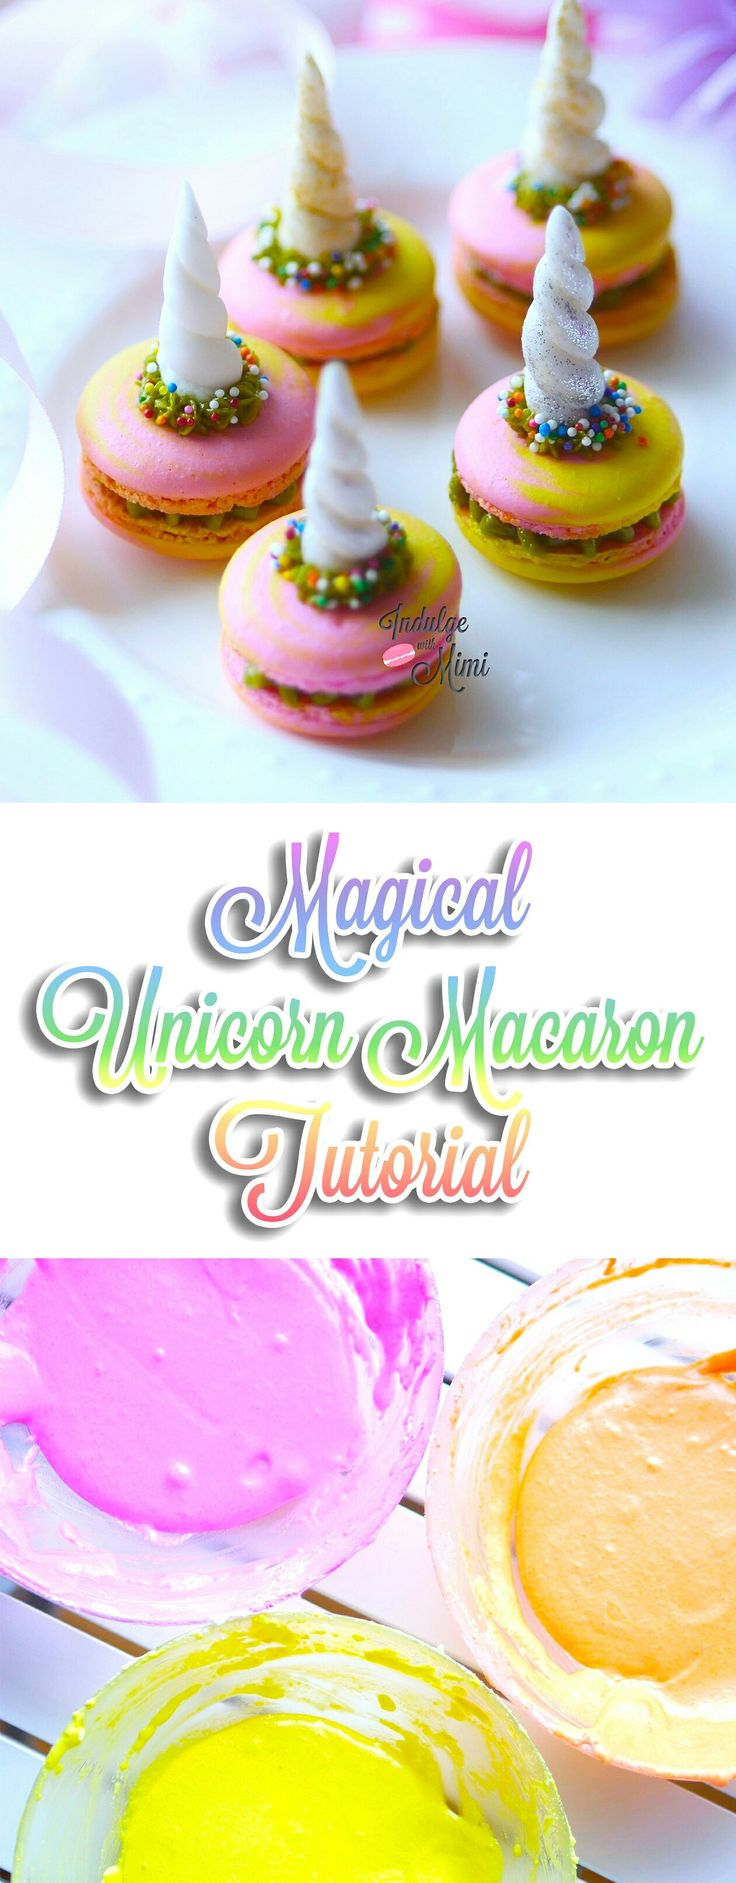 866 best French Macarons images on Pinterest | French macaroons ...